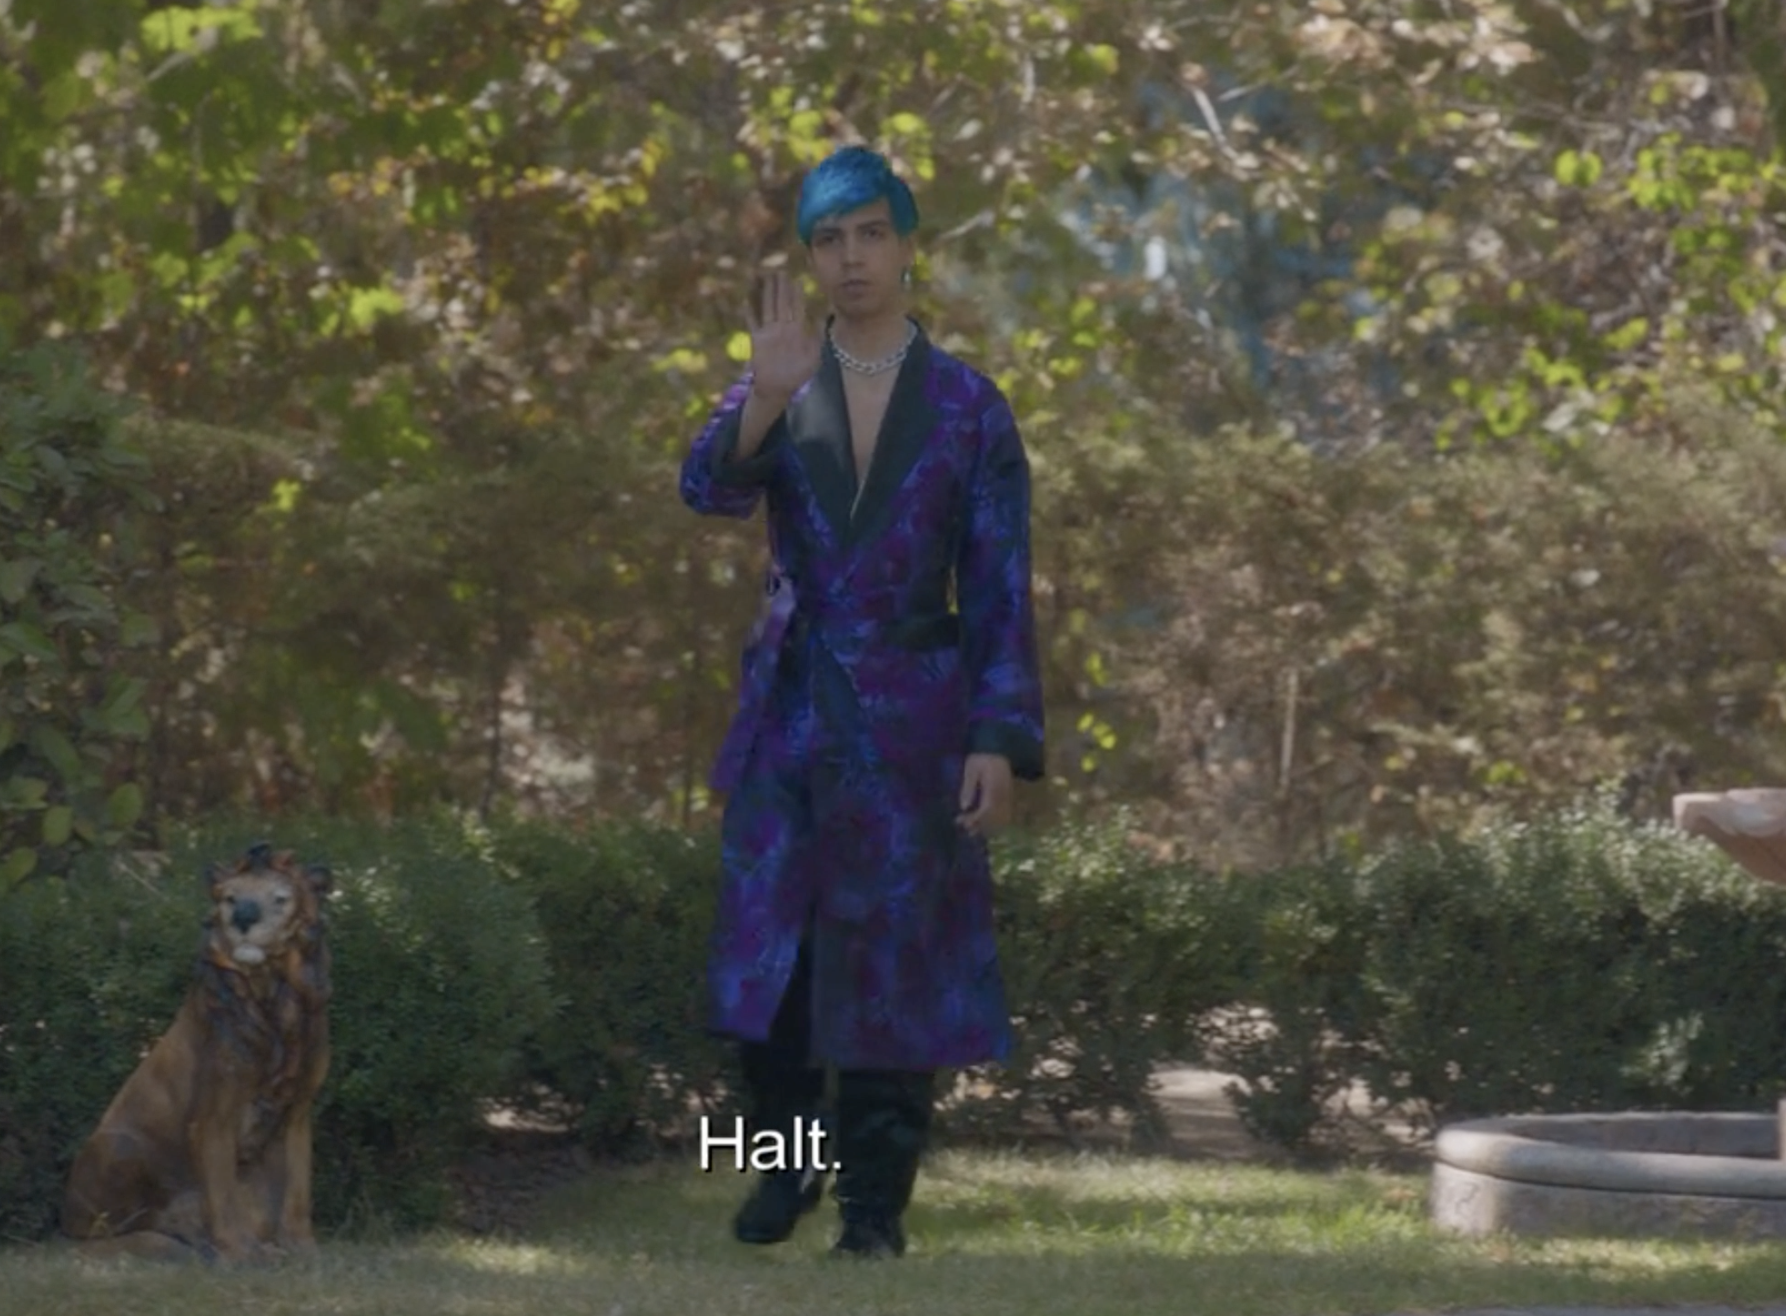 Andres wearing a blue knee-length robe with black trim and bright blue floral accents